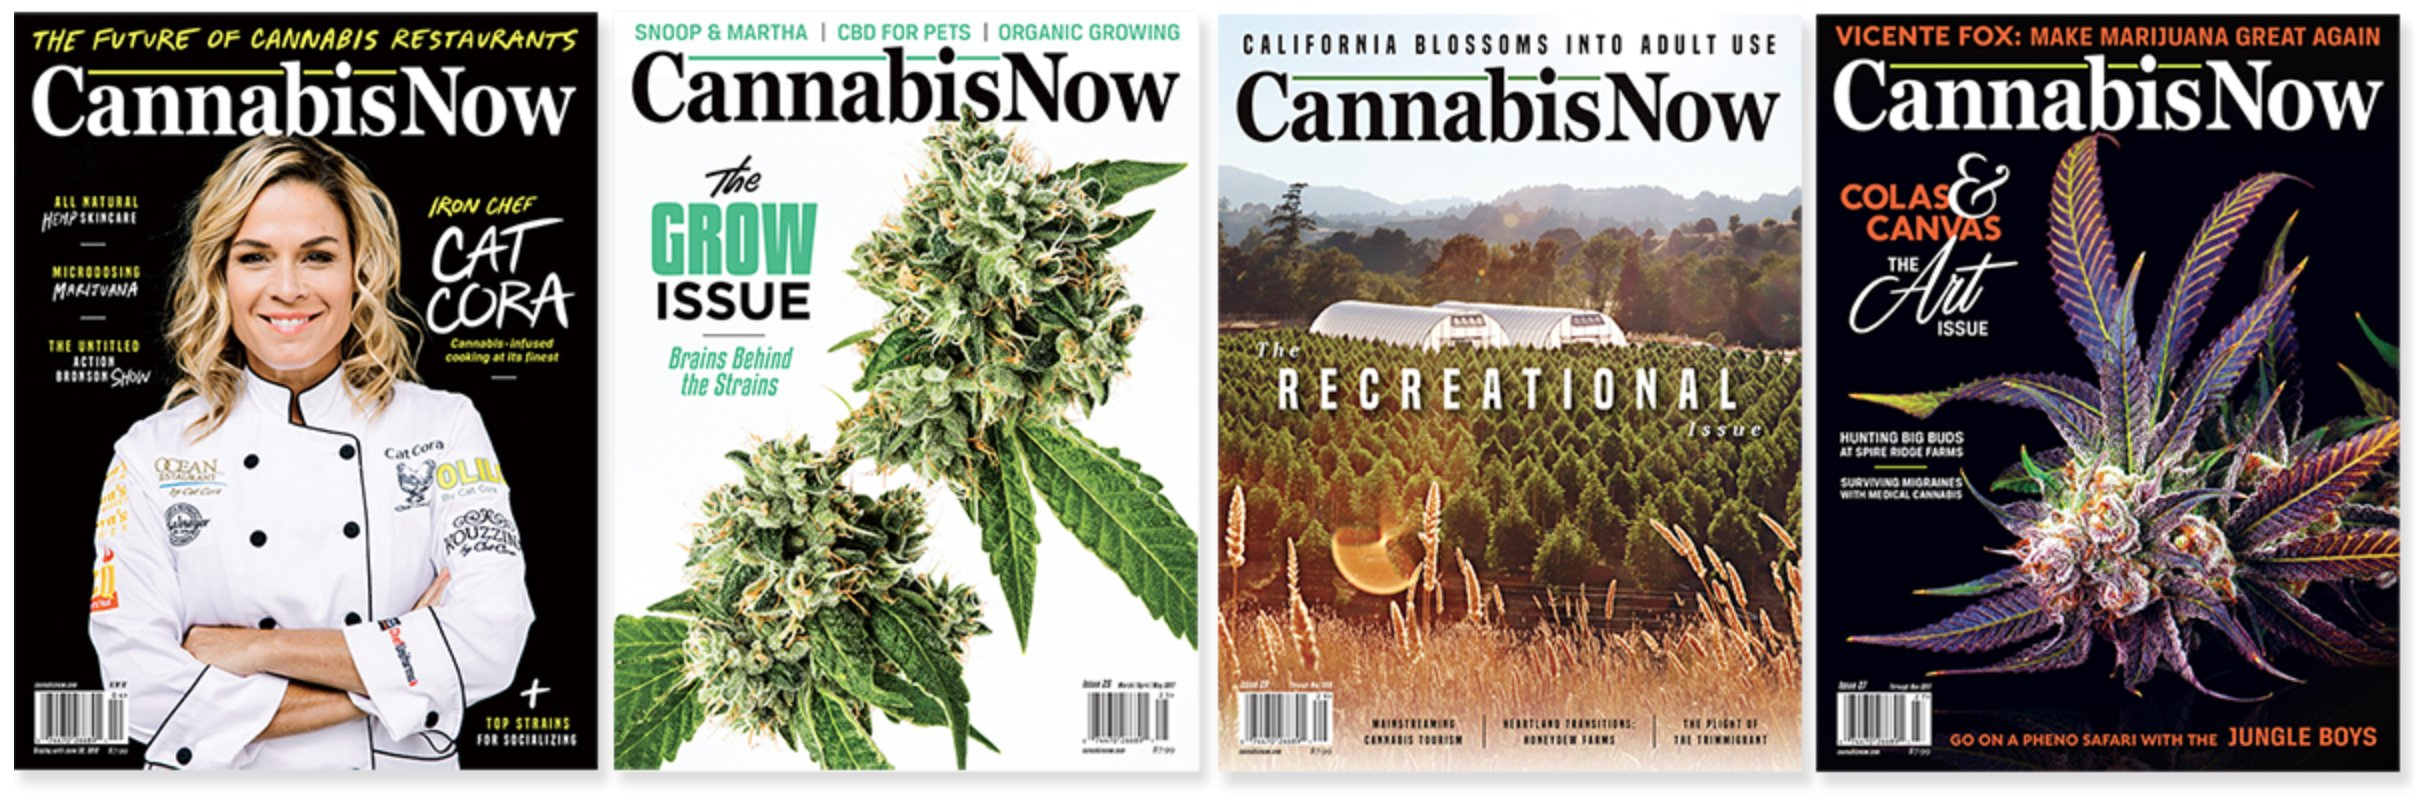 """Cannabis is Still Five Years Away From Catching up to Where the Pharmaceutical Companies are or the Big Brands of the World the Nike's and the Budweiser's..."""